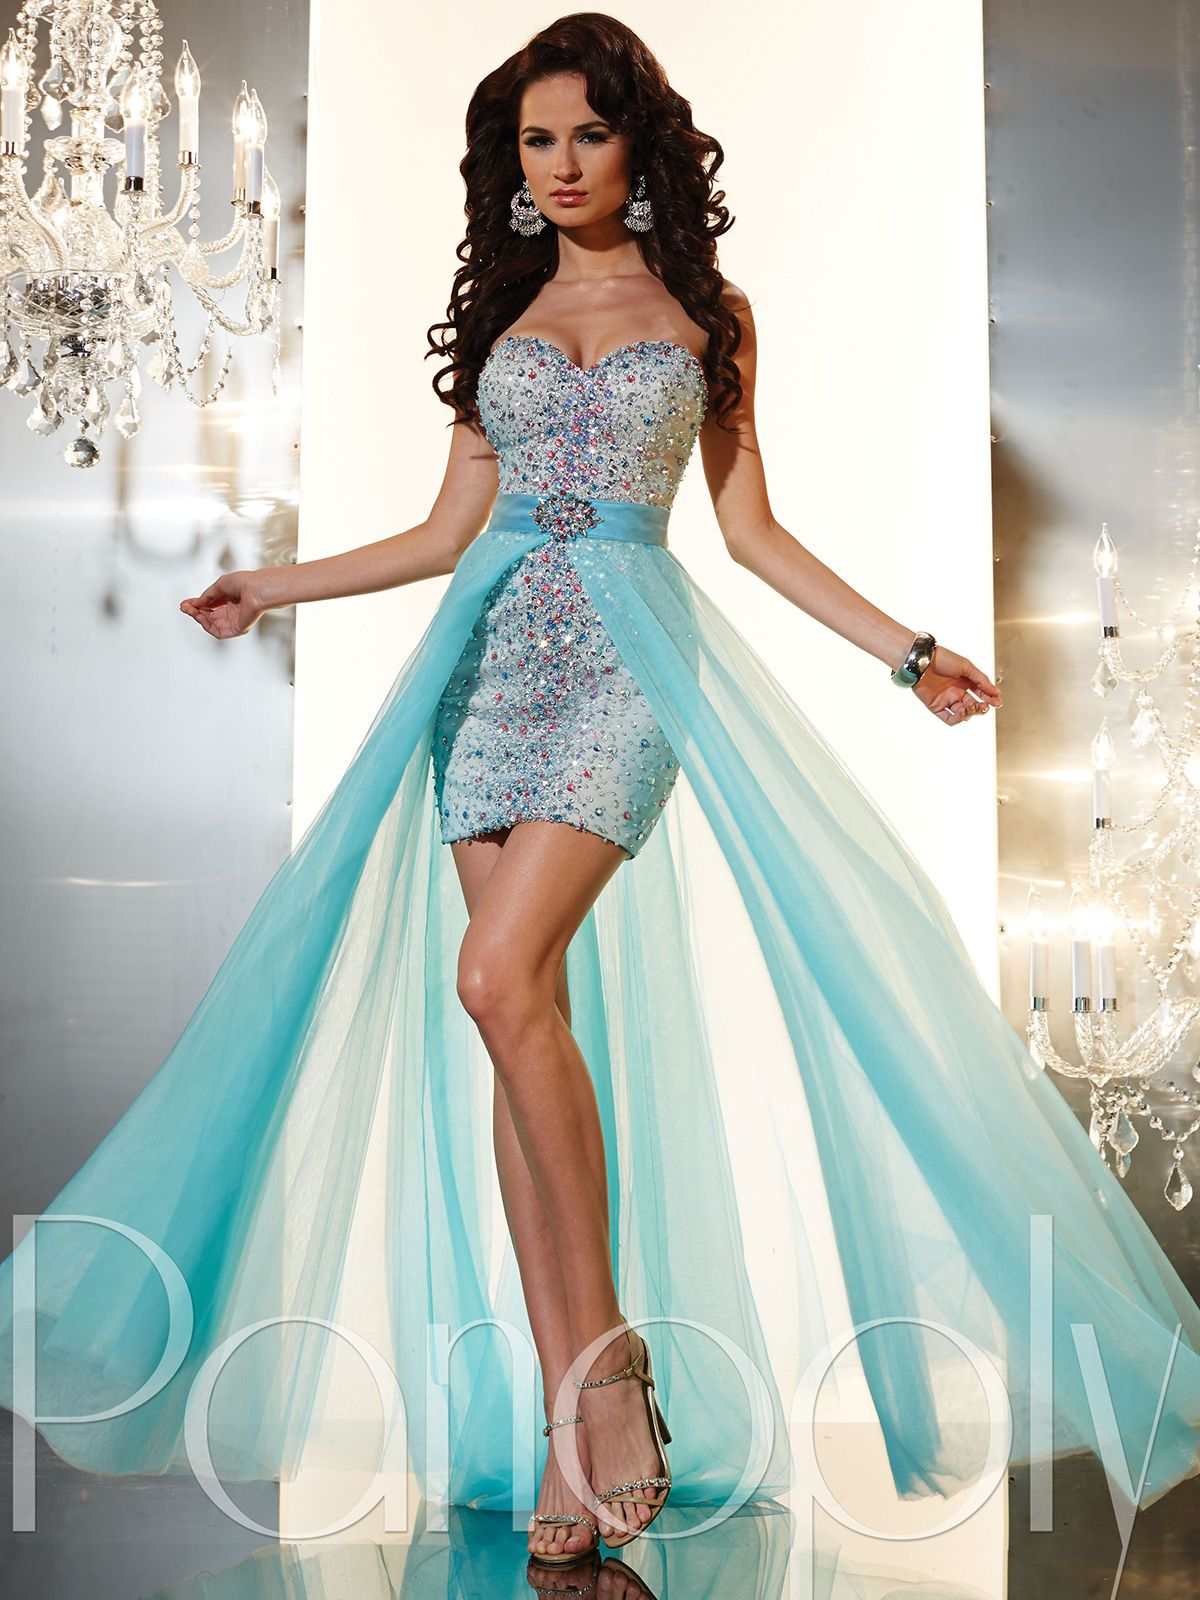 disney princess inspired dresses | Disney Princess Inspired Prom ...